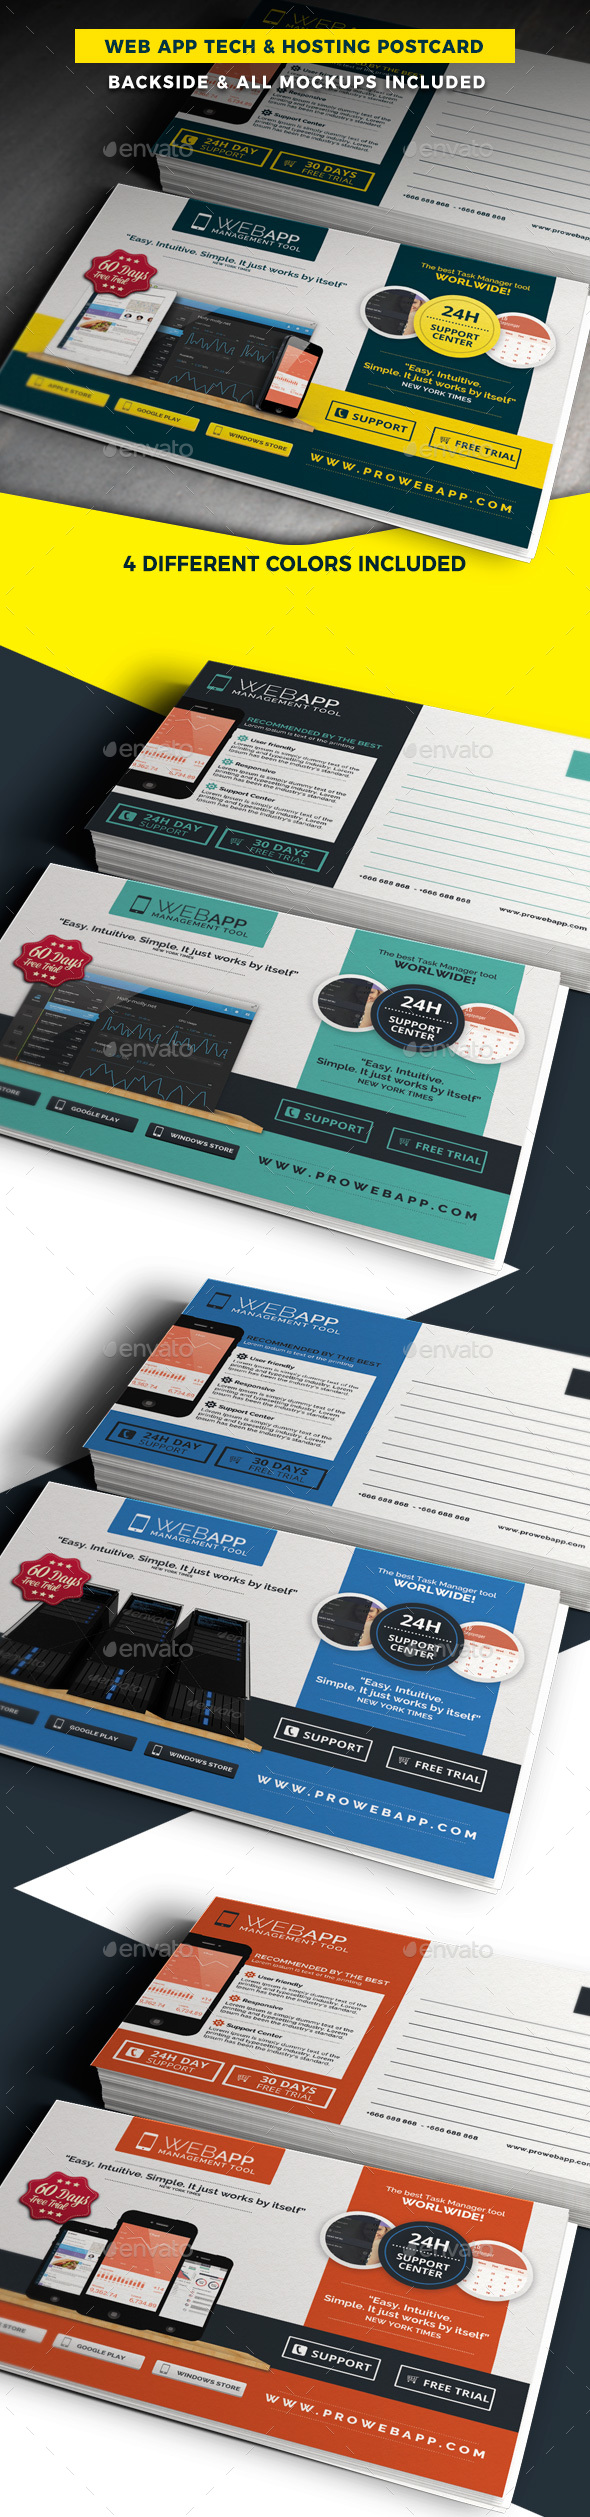 Web App Tech and Hosting Postcard Template - Cards & Invites Print Templates